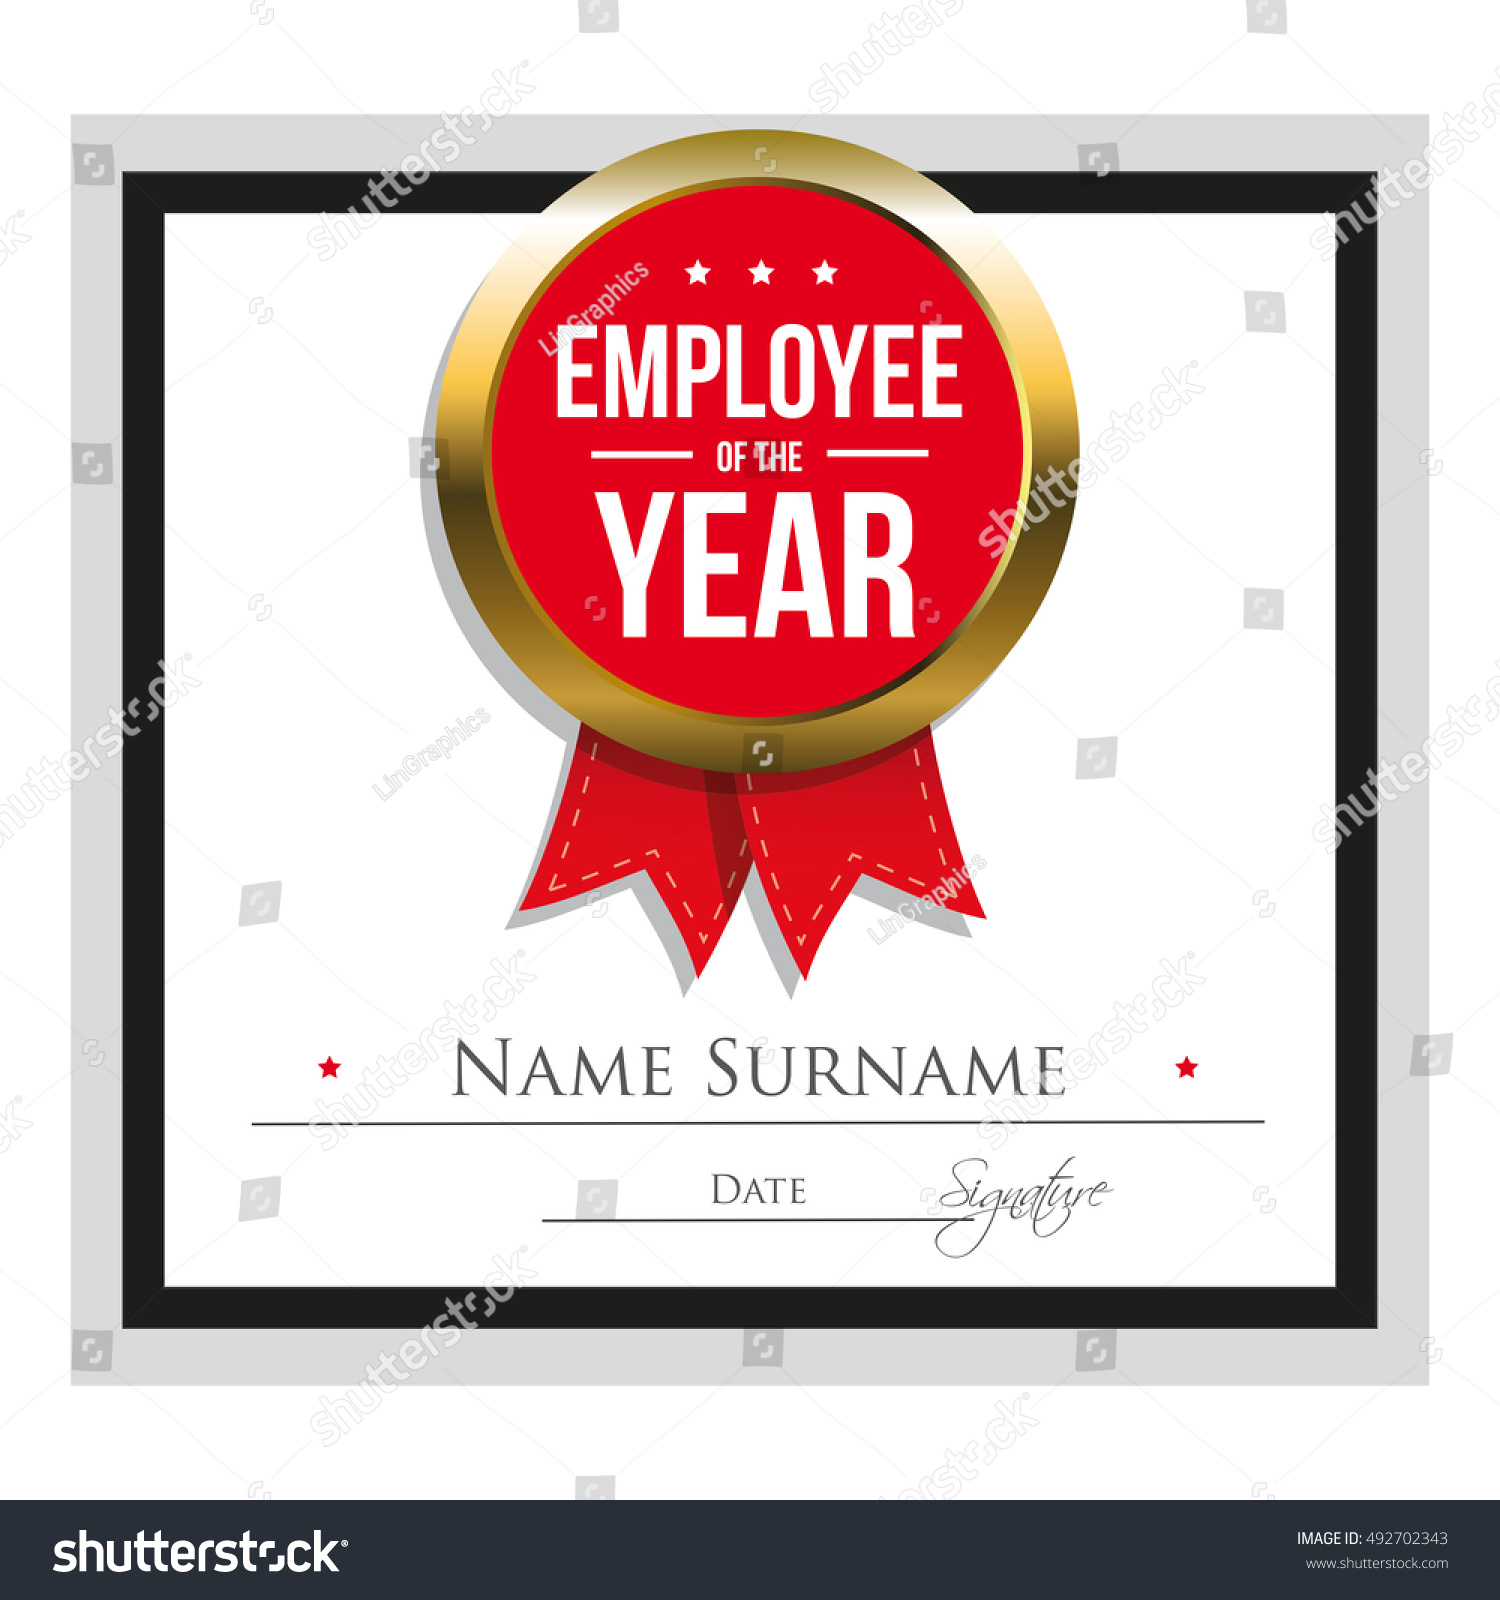 Employee Of The Year Certificate Template  Best Employee Certificate Sample